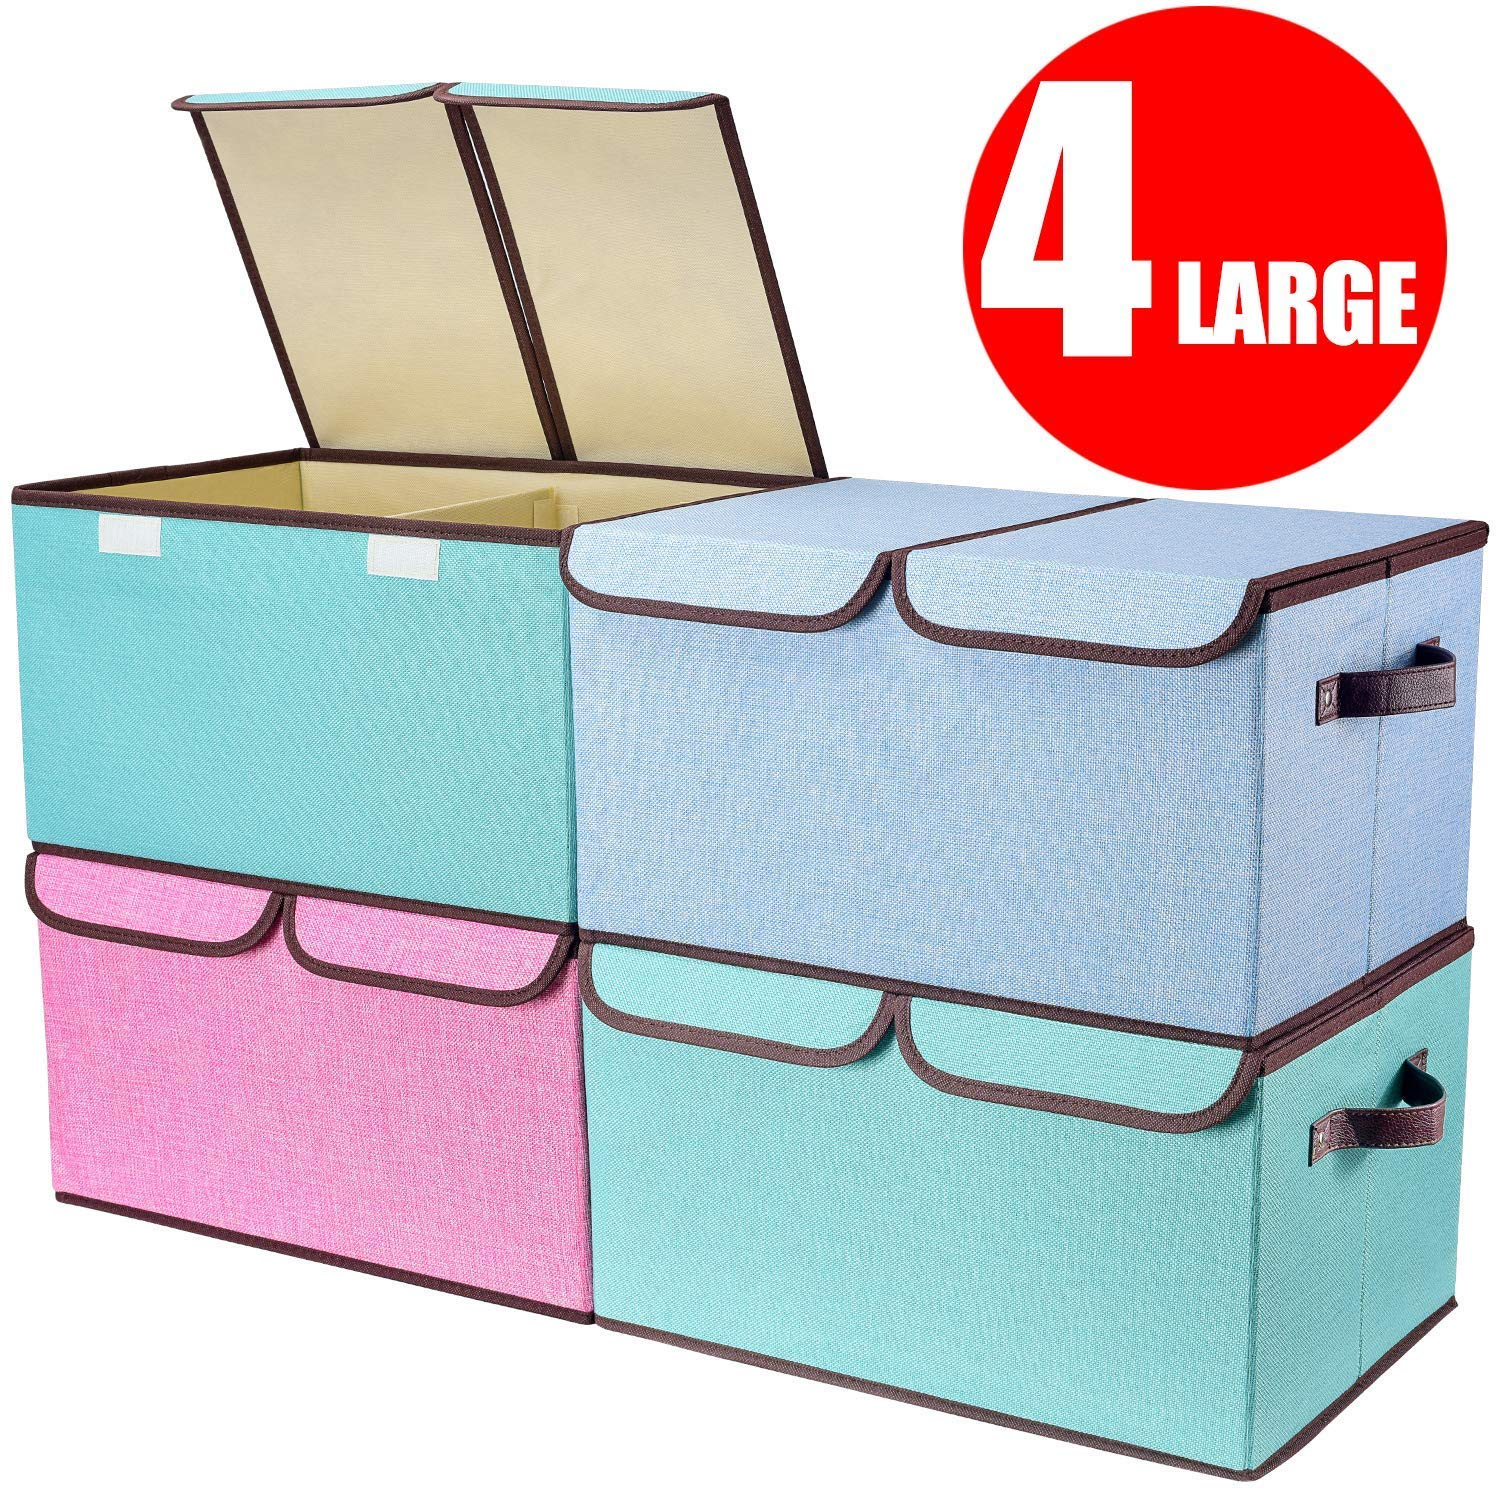 Larger Storage Cubes [4-Pack] Senbowe Linen Fabric Foldable Collapsible Storage Cube Bin Organizer Basket with Lid, Handles, Removable Divider For Home, Office, Nursery, Closet - (17.7 x 11.8 x 9.8'') by senbowe